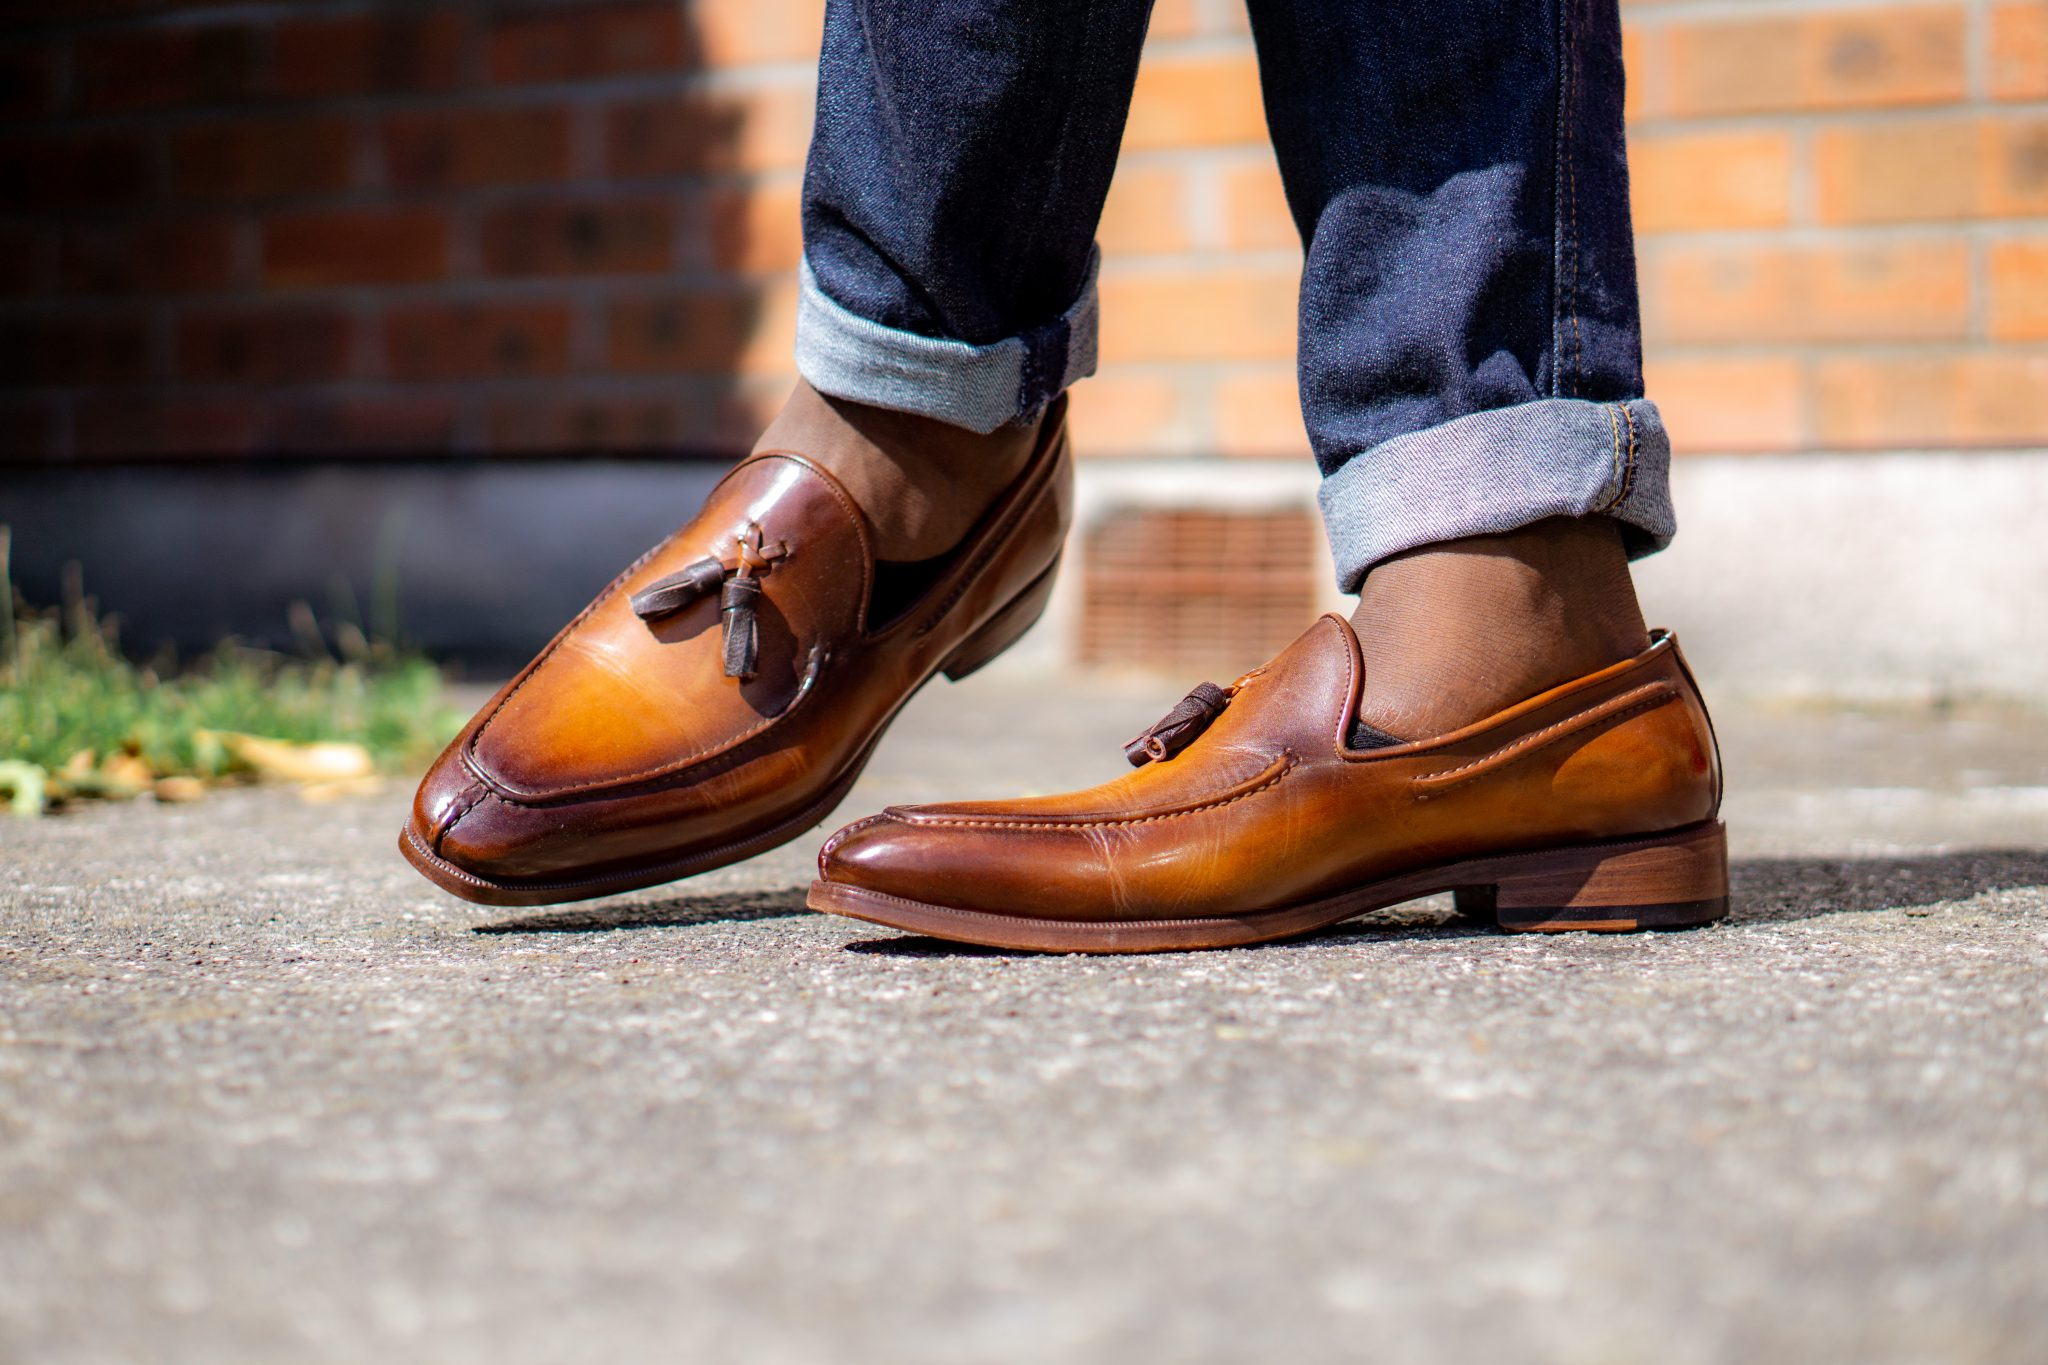 The most stylish pair of shoes if you could only have one for summer – Paul Parkman loafers